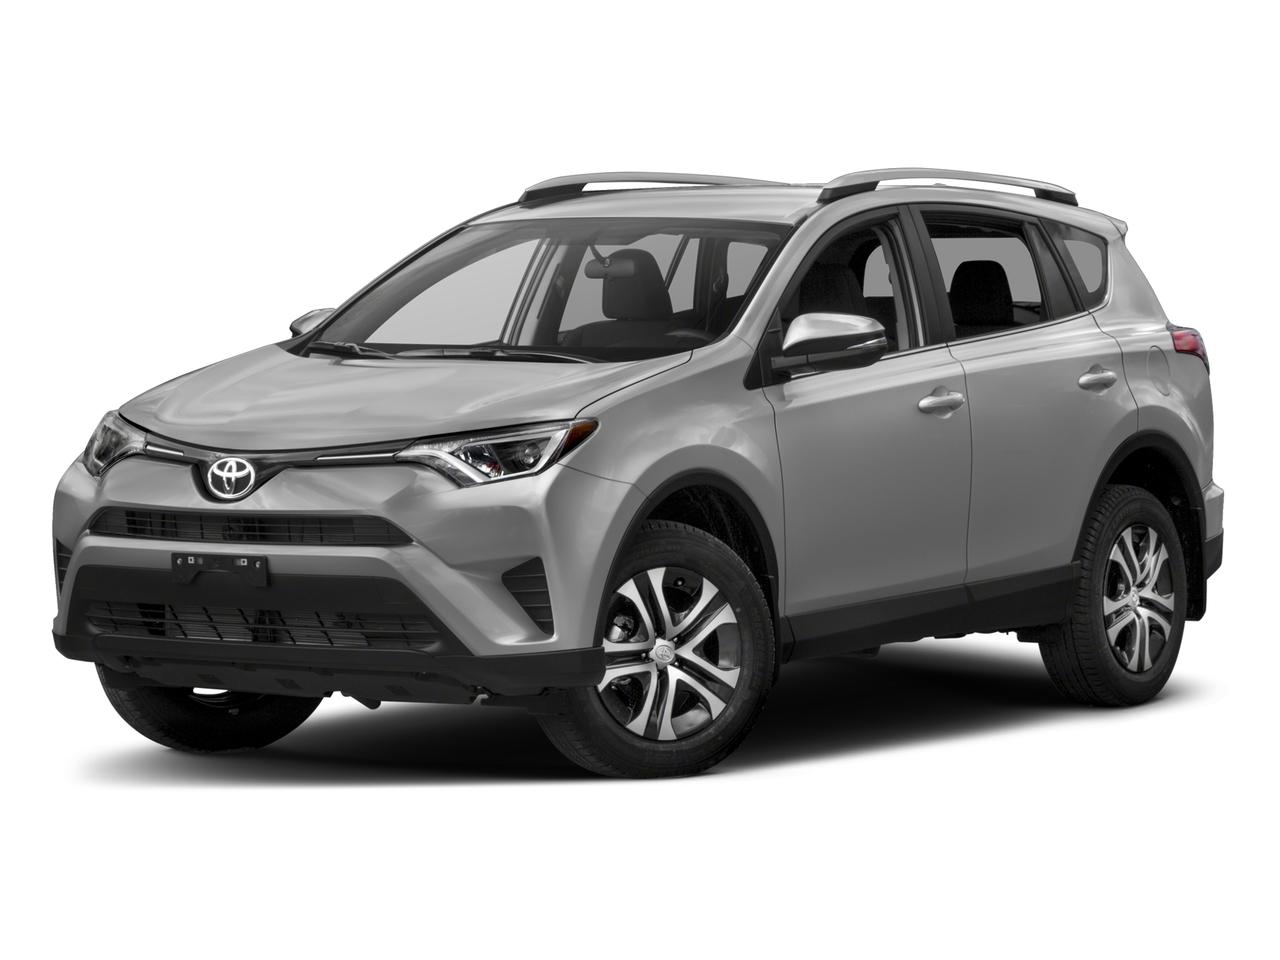 2018 Toyota RAV4 Vehicle Photo in Mission, TX 78572